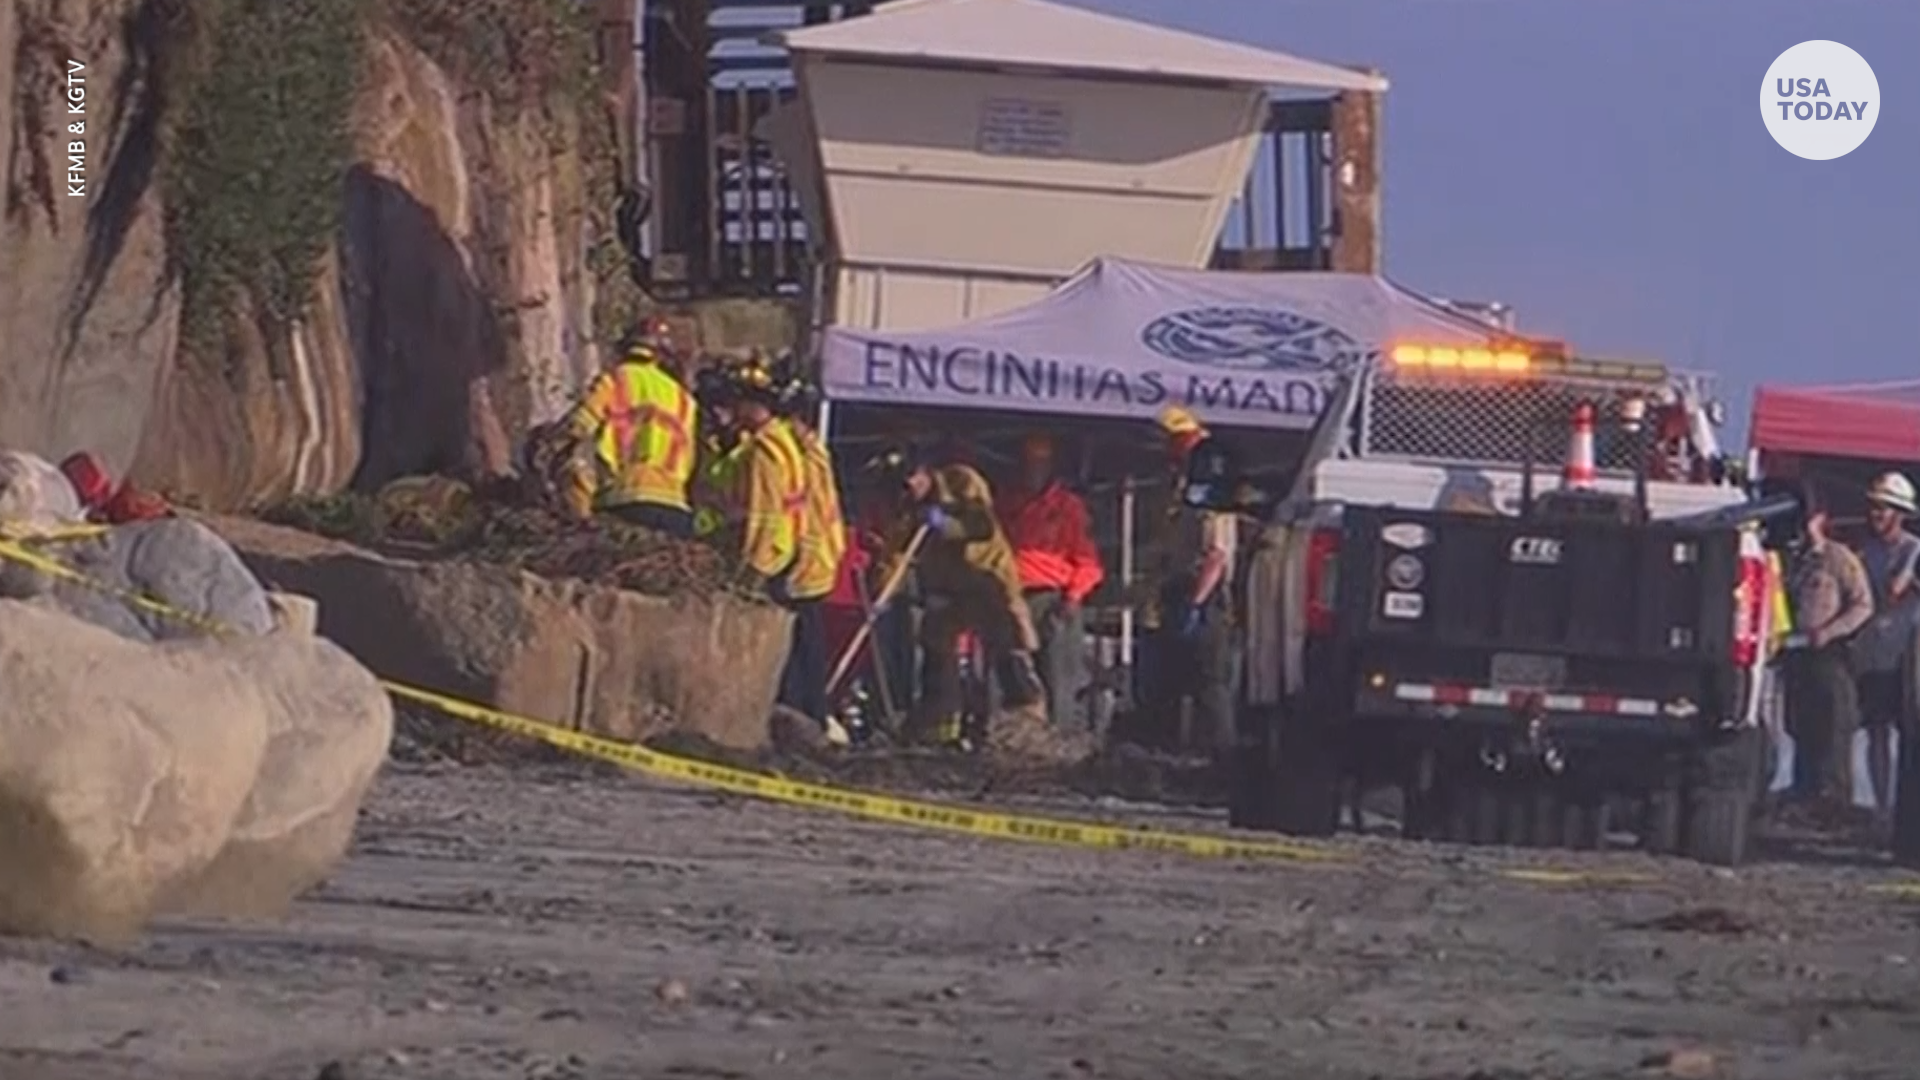 At least 3 dead after cliff collapse on California beach